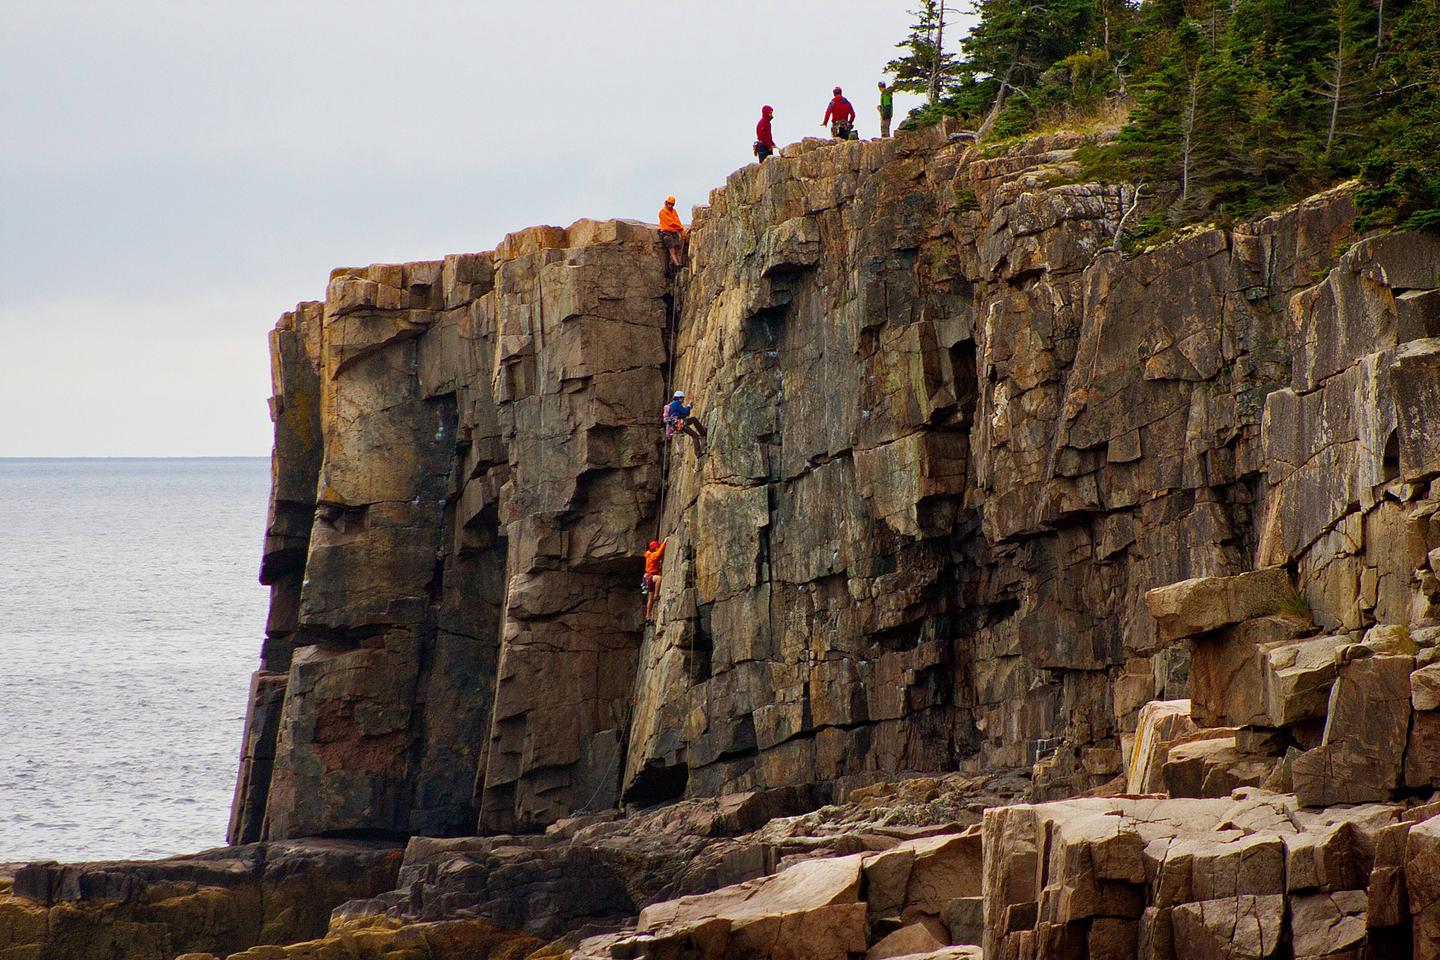 Climbers ascend Otter Cliffs at Acadia National ParkClimbers ascend Otter Cliffs at Acadia National Park.